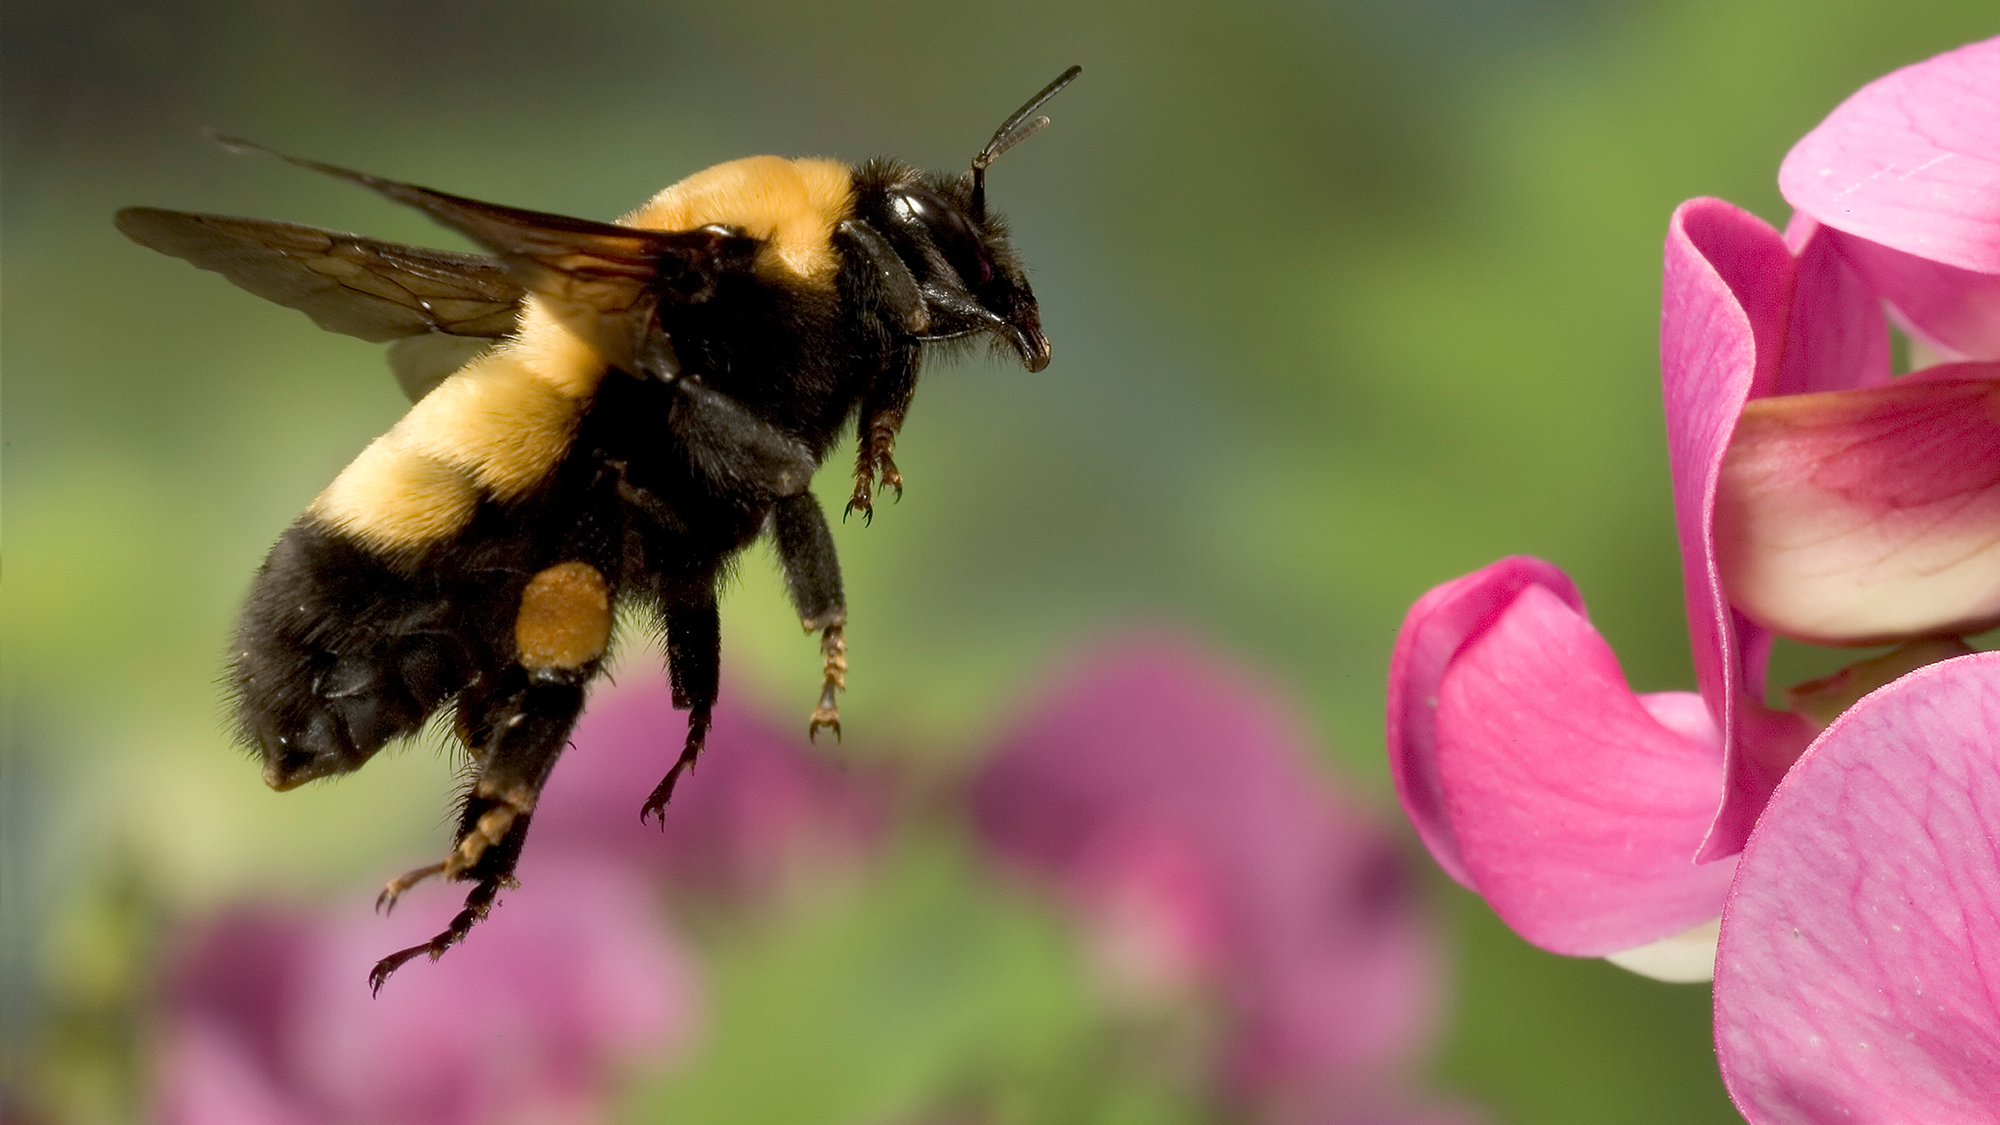 Giant bumble bee pictures